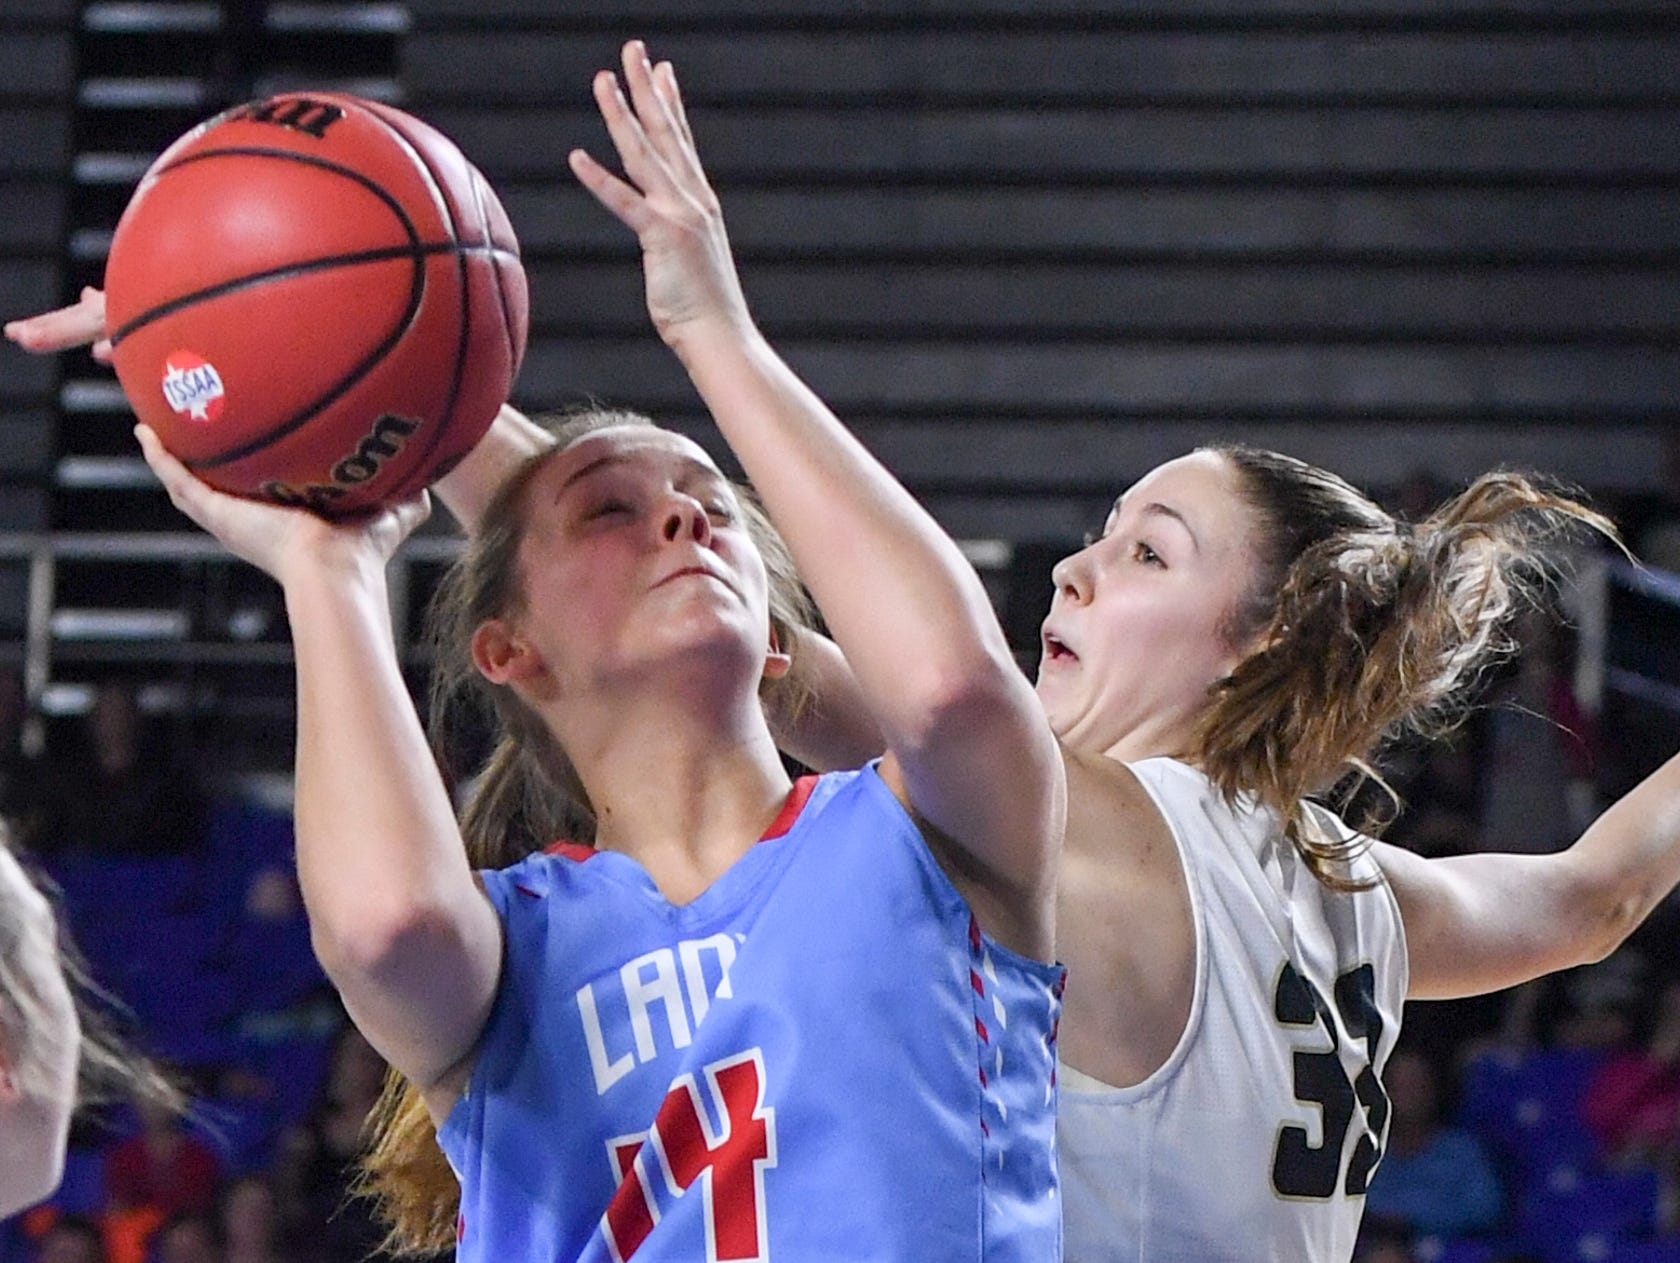 Loretto's Kensey Weathers (33) jumps up to block the shot of Gibson County's Alaina Hunt (14) during their Class A championship game, Saturday, March 9, 2019, in Murfreesboro.